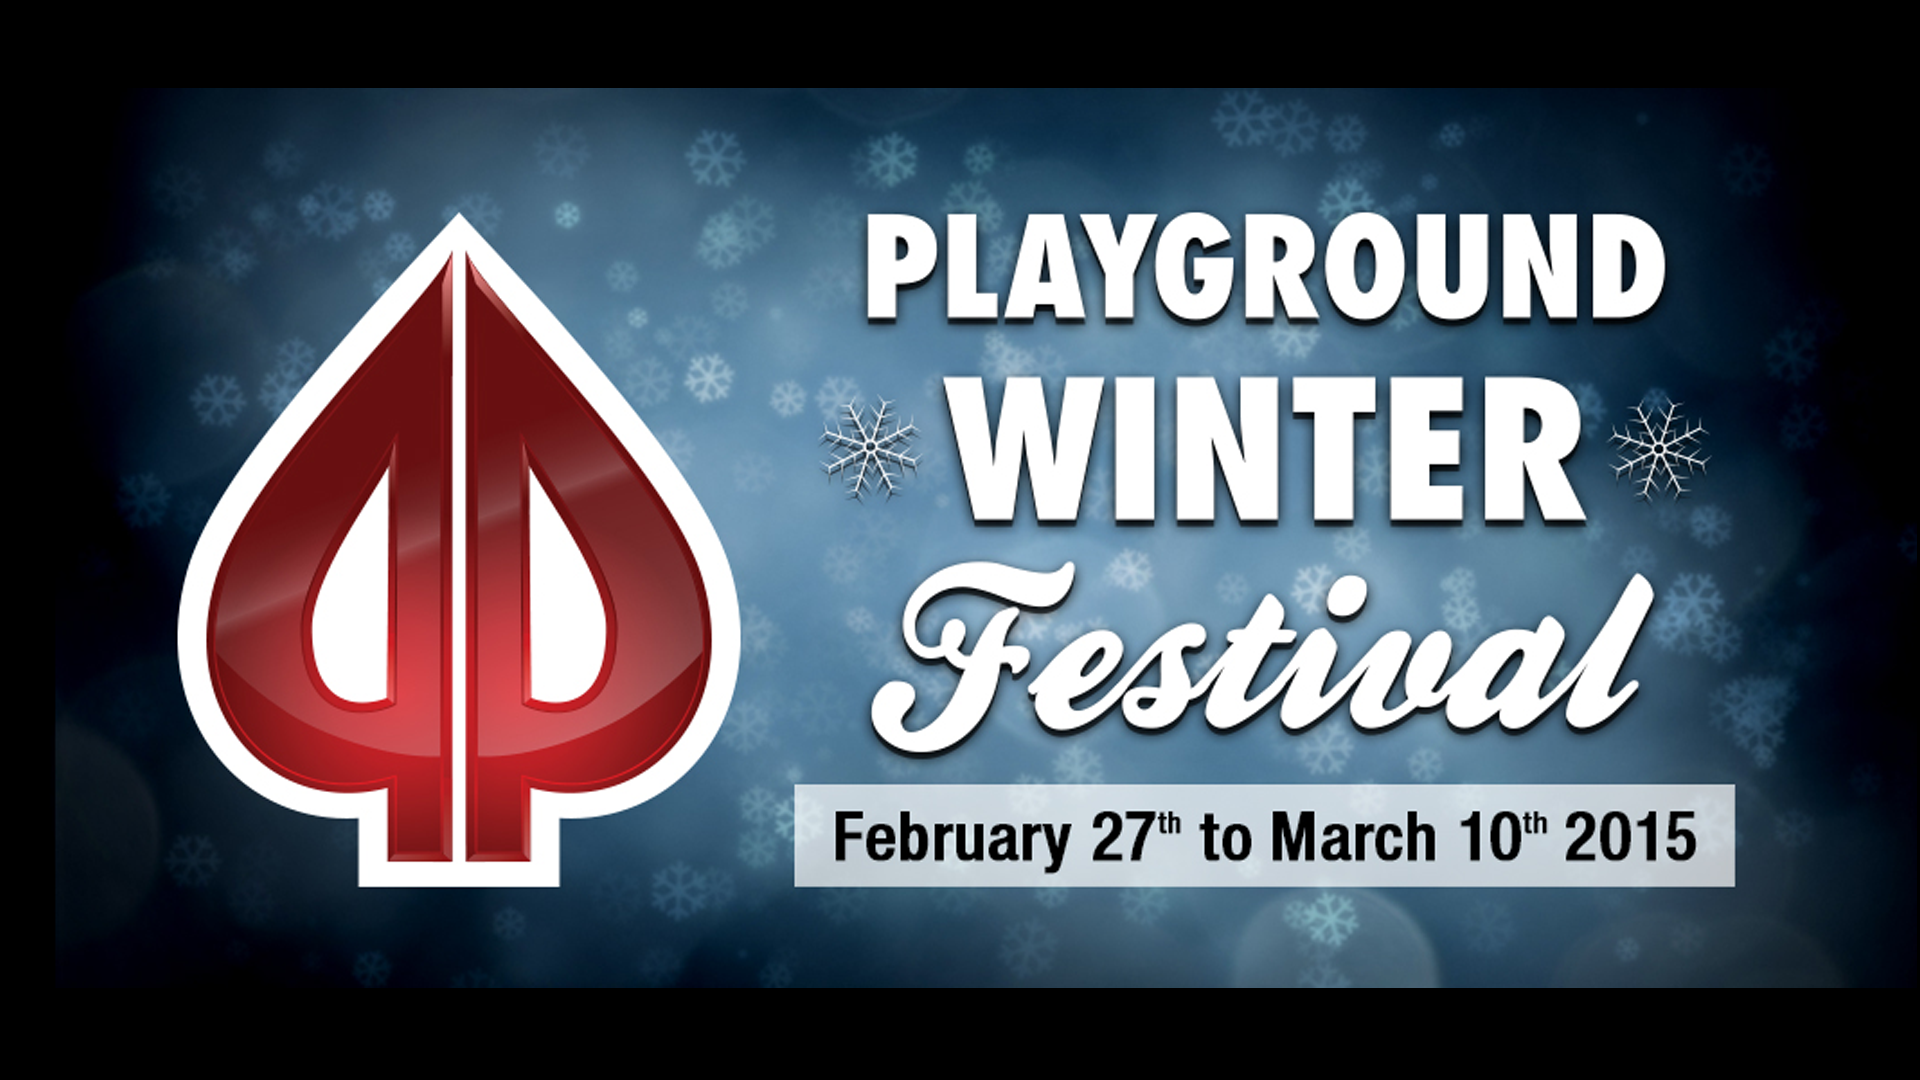 Keep the winter blues at bay with the Playground Winter Festival!